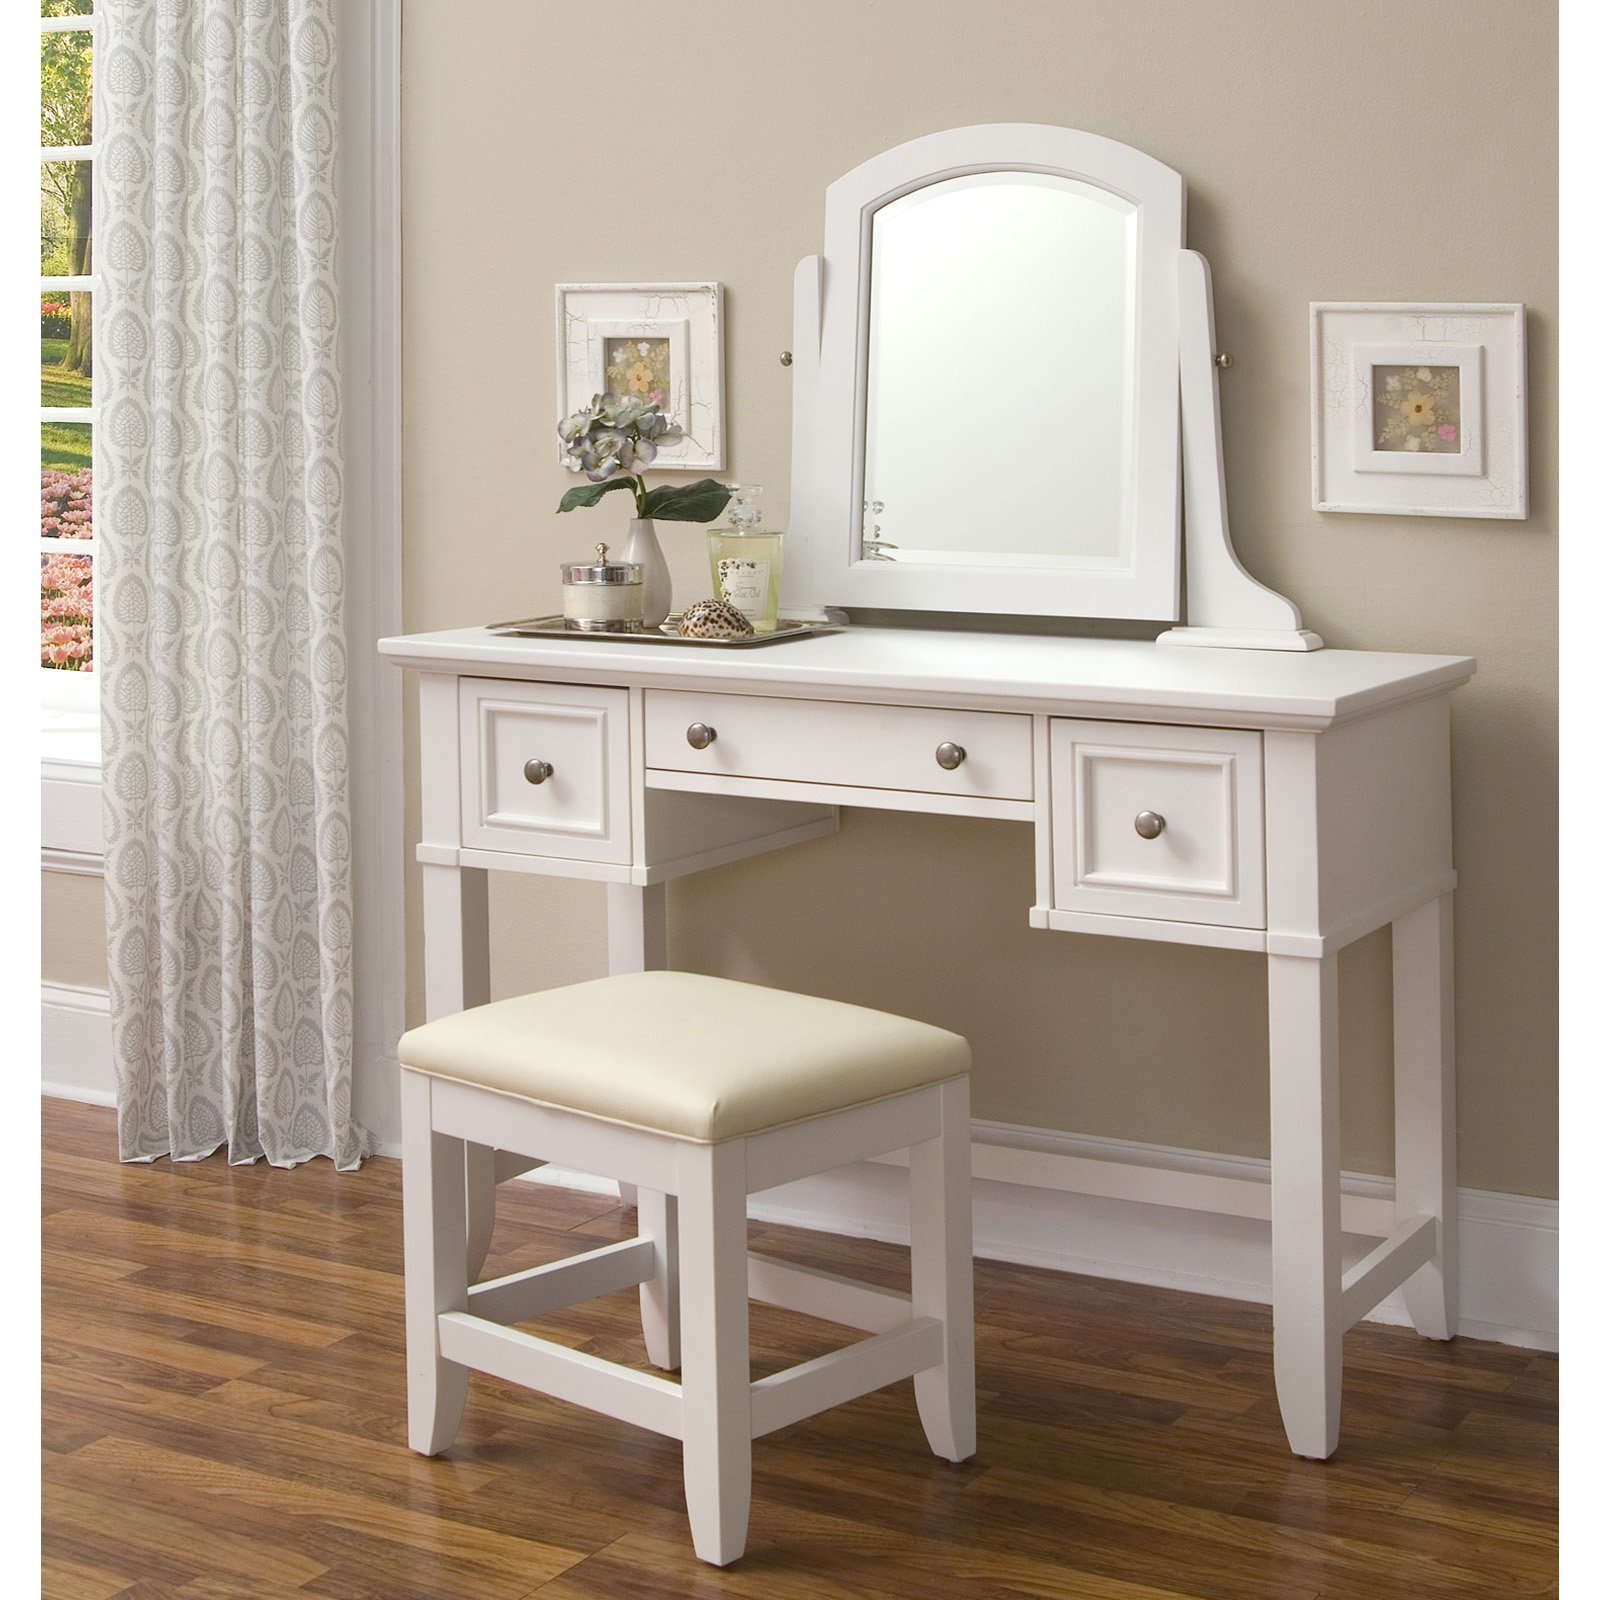 Tips to How To Select A Bedroom Vanity – darbylanefurniture.com